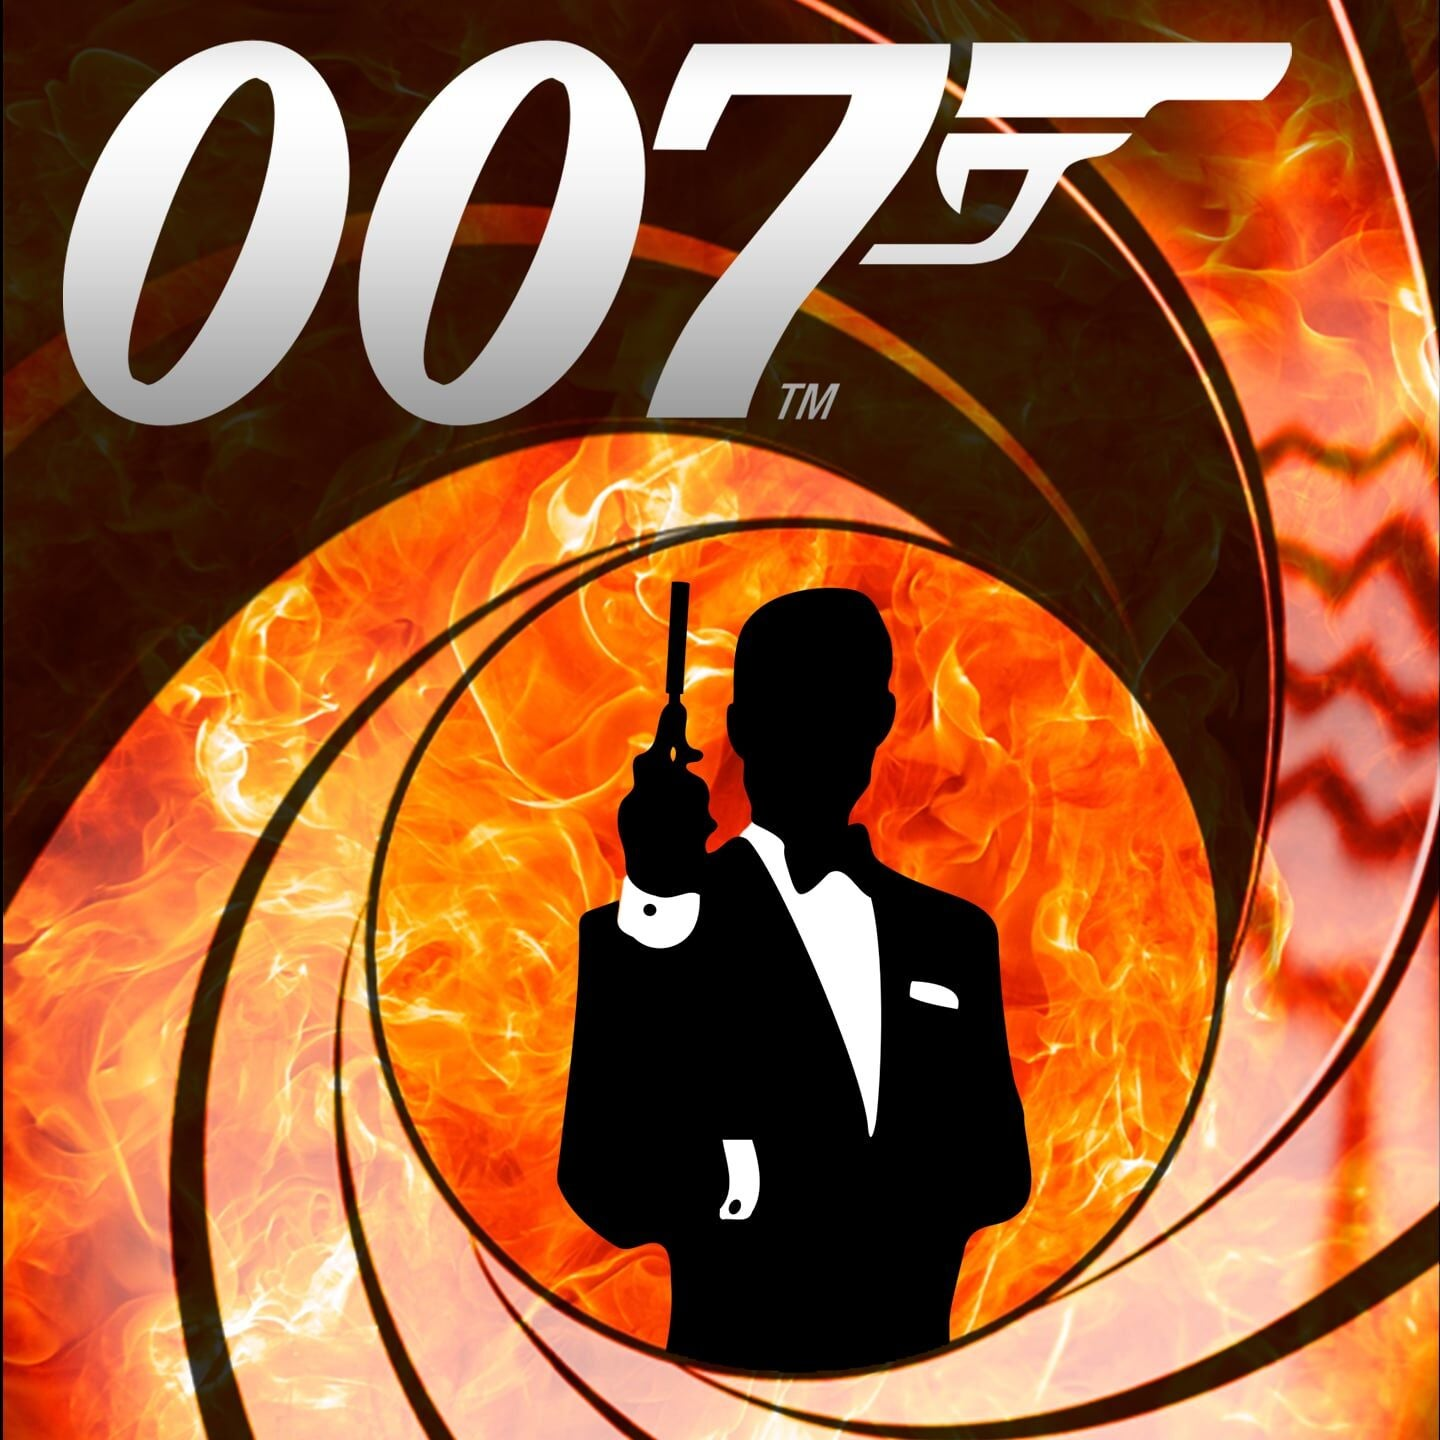 Charlotte Symphony: 007: The Best of James Bond